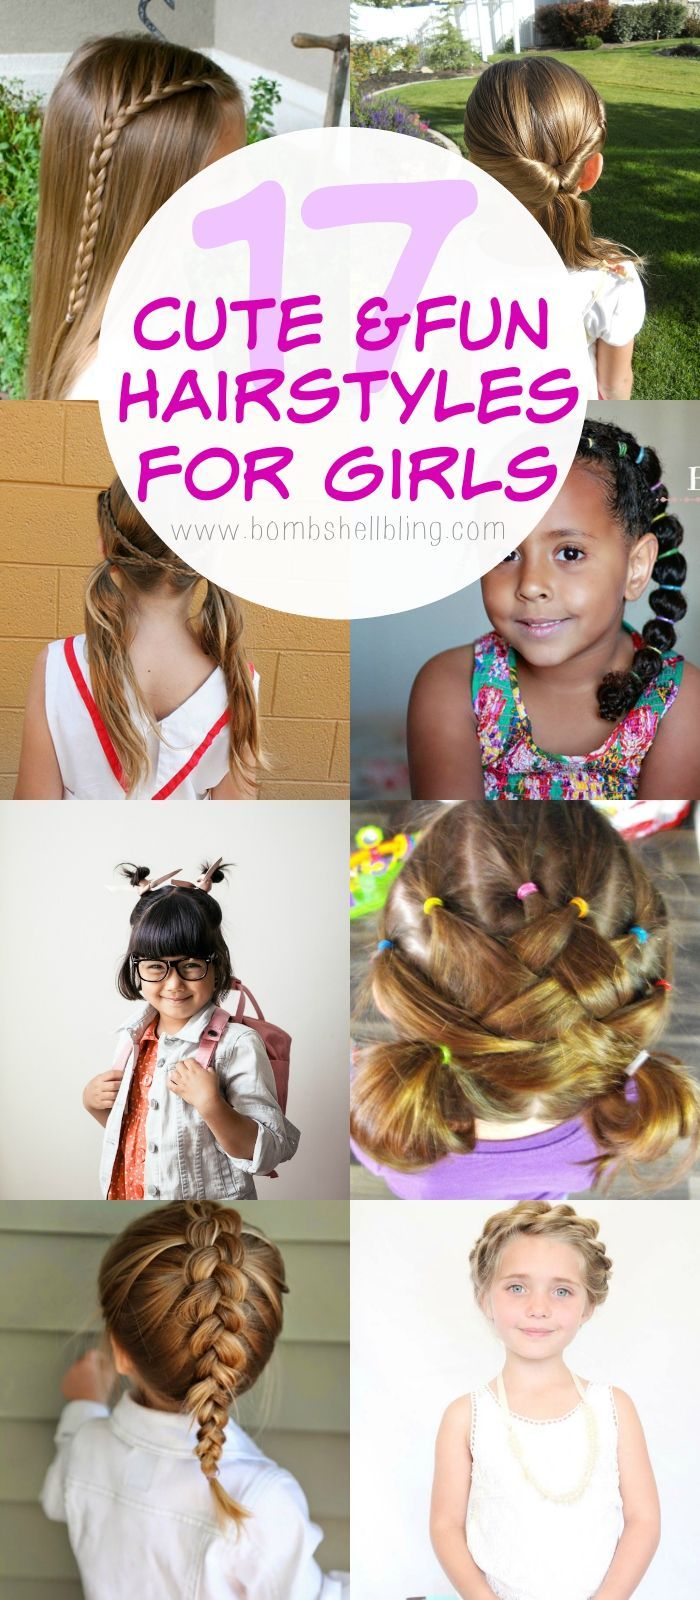 Fun Back To School Hairstyles For Girls Hair Pinterest - Hairstyle for school girl easy